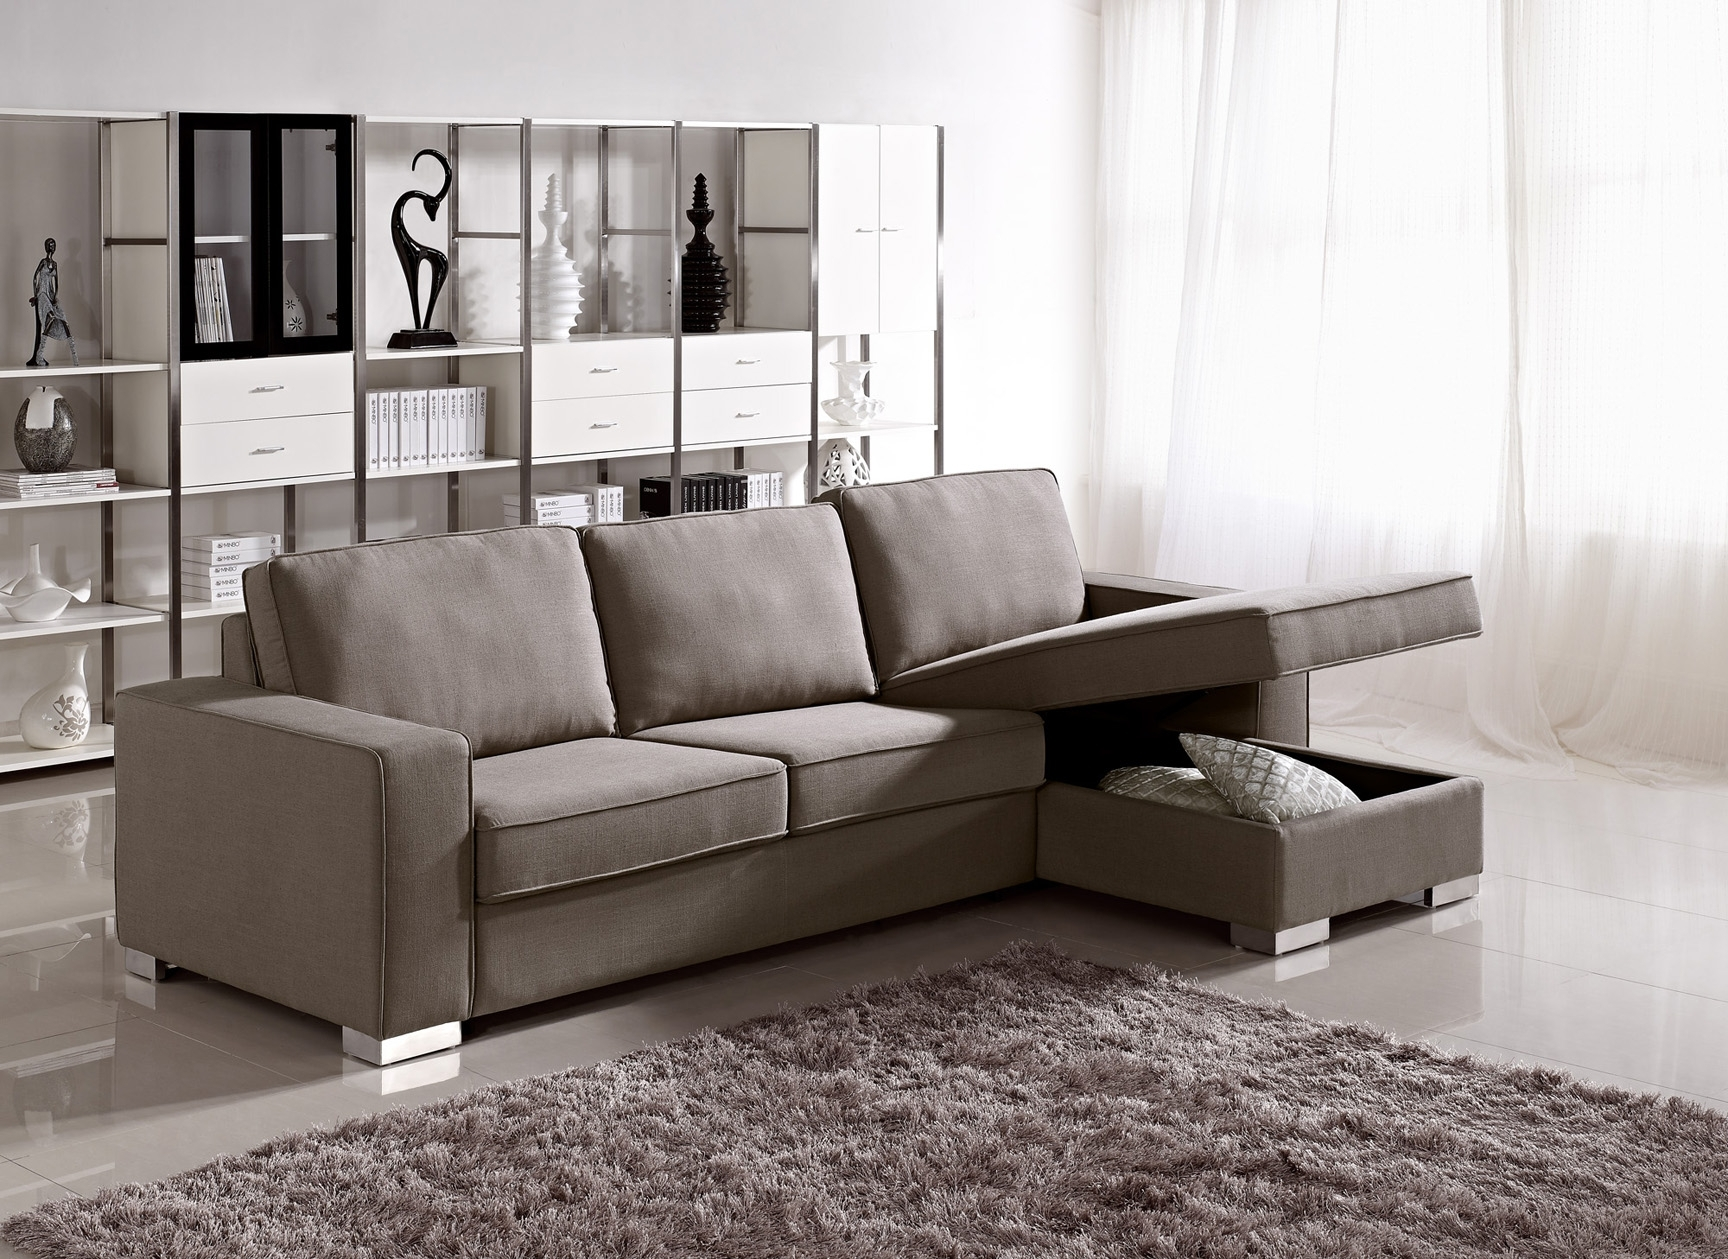 Living Room Furniture Storage Modular Sofa With Thesofa Modern Nice Intended For Nyc Sectional Sofas (View 2 of 10)